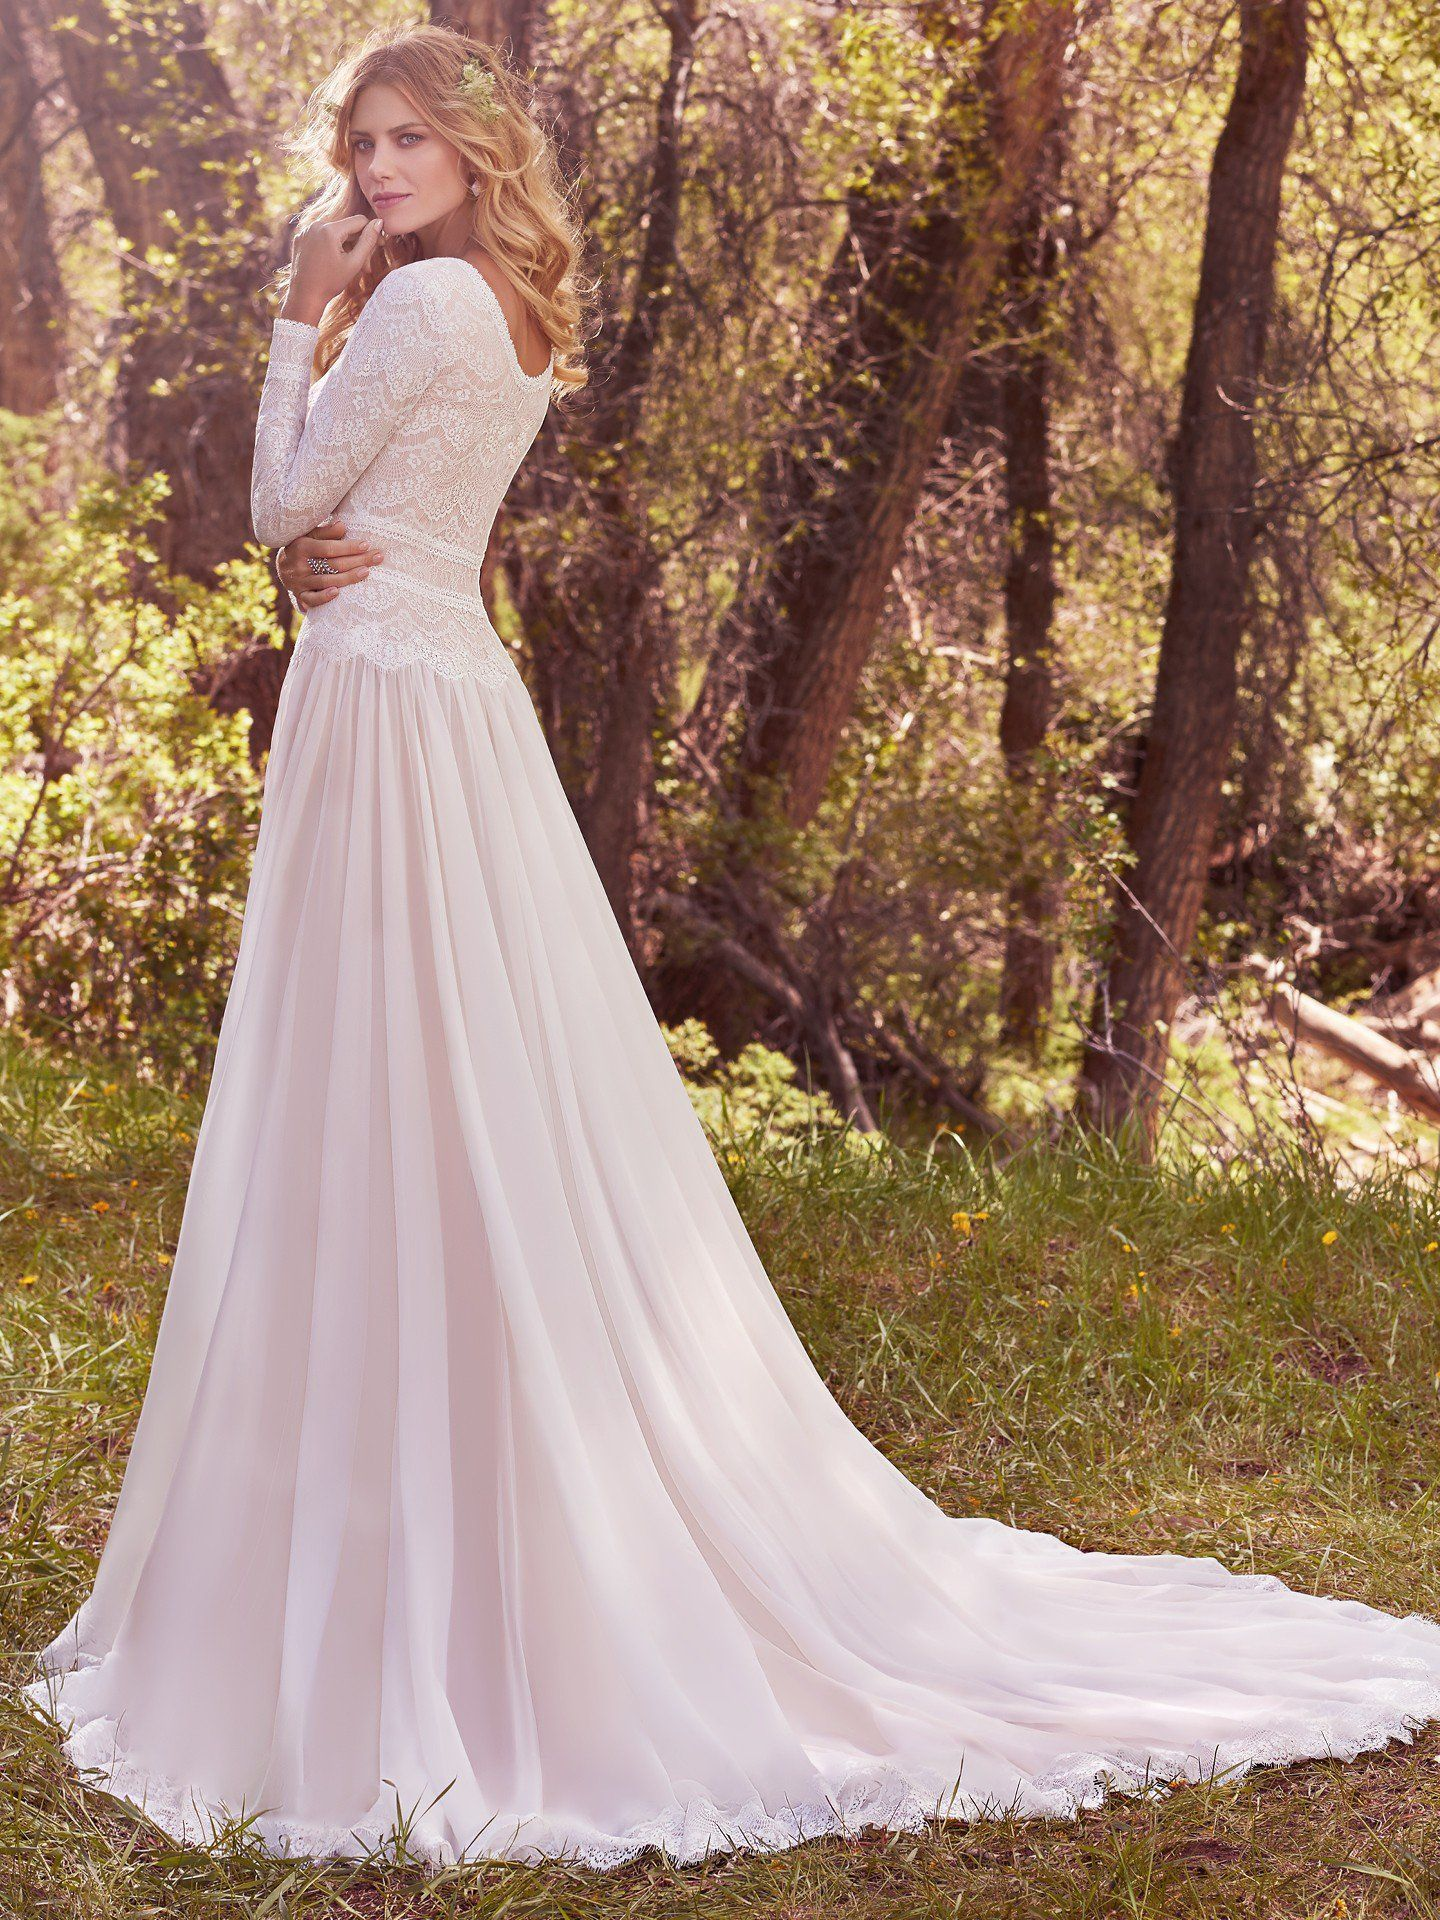 Deirdre marie by maggie sottero wedding dresses in say yes to